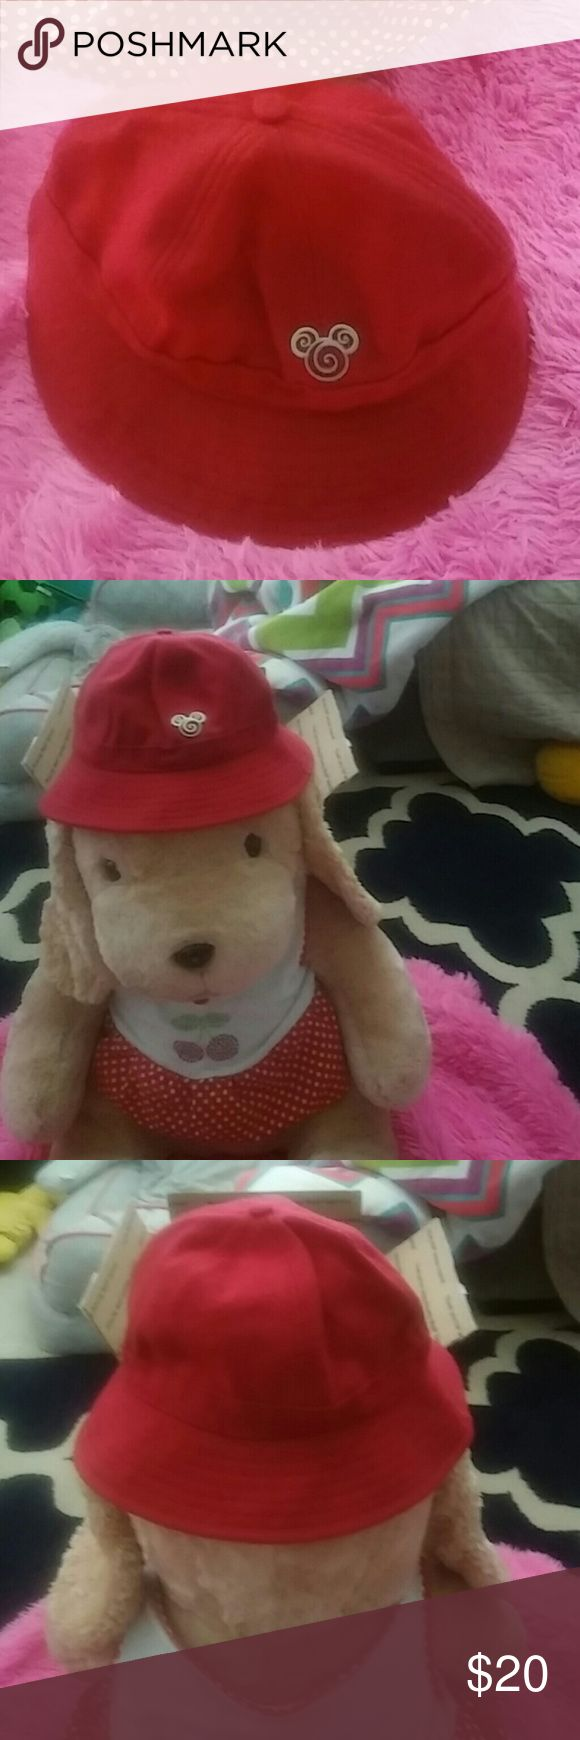 Nwt red Disney wool bucket hat This is a Disney Parks original Mickey Mouse red bucket hats originally $60 at the parks super rare but a must have Disney Accessories Hats